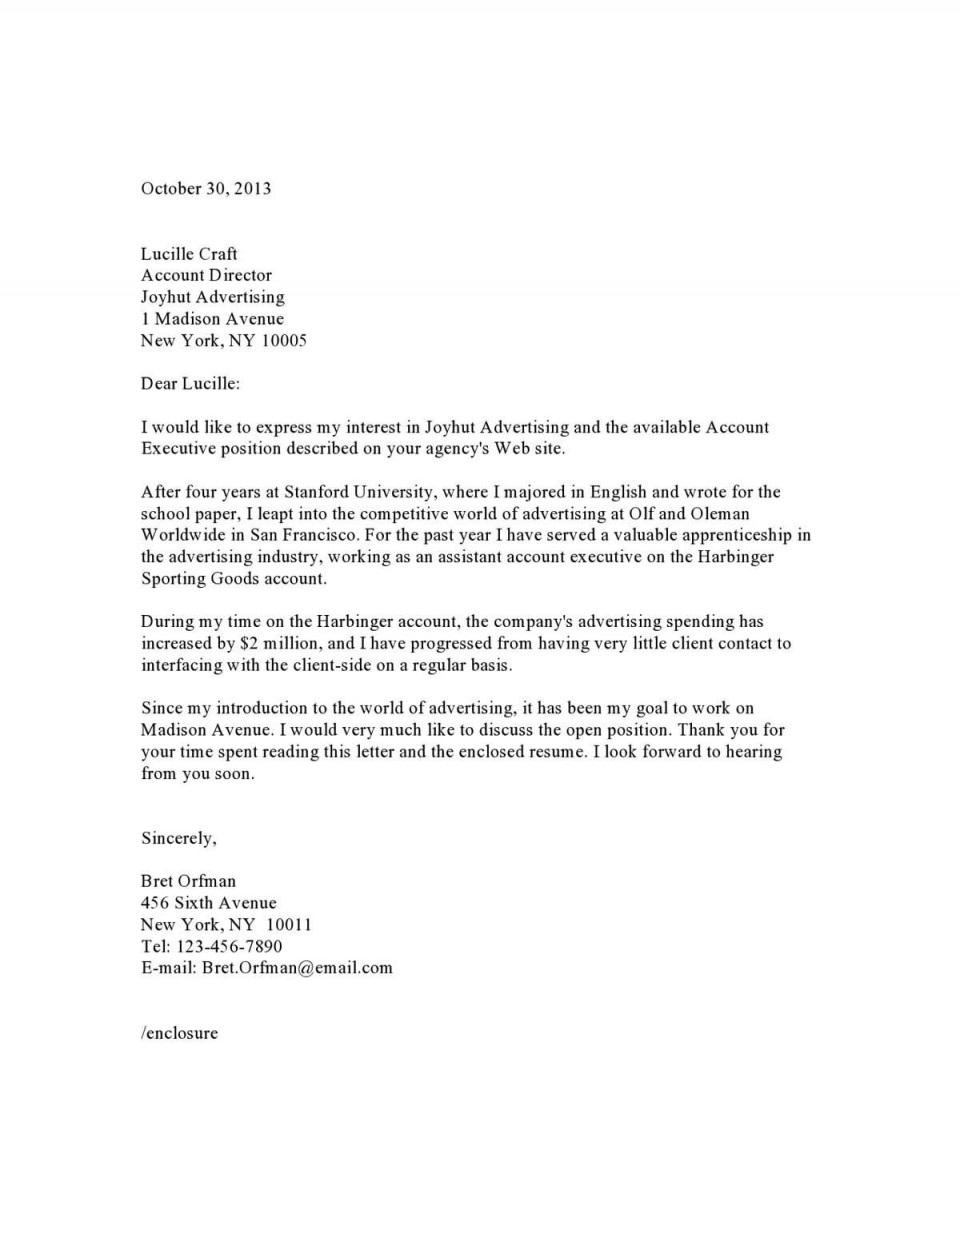 003 Simple General Manager Cover Letter Template Inspiration  Hotel960